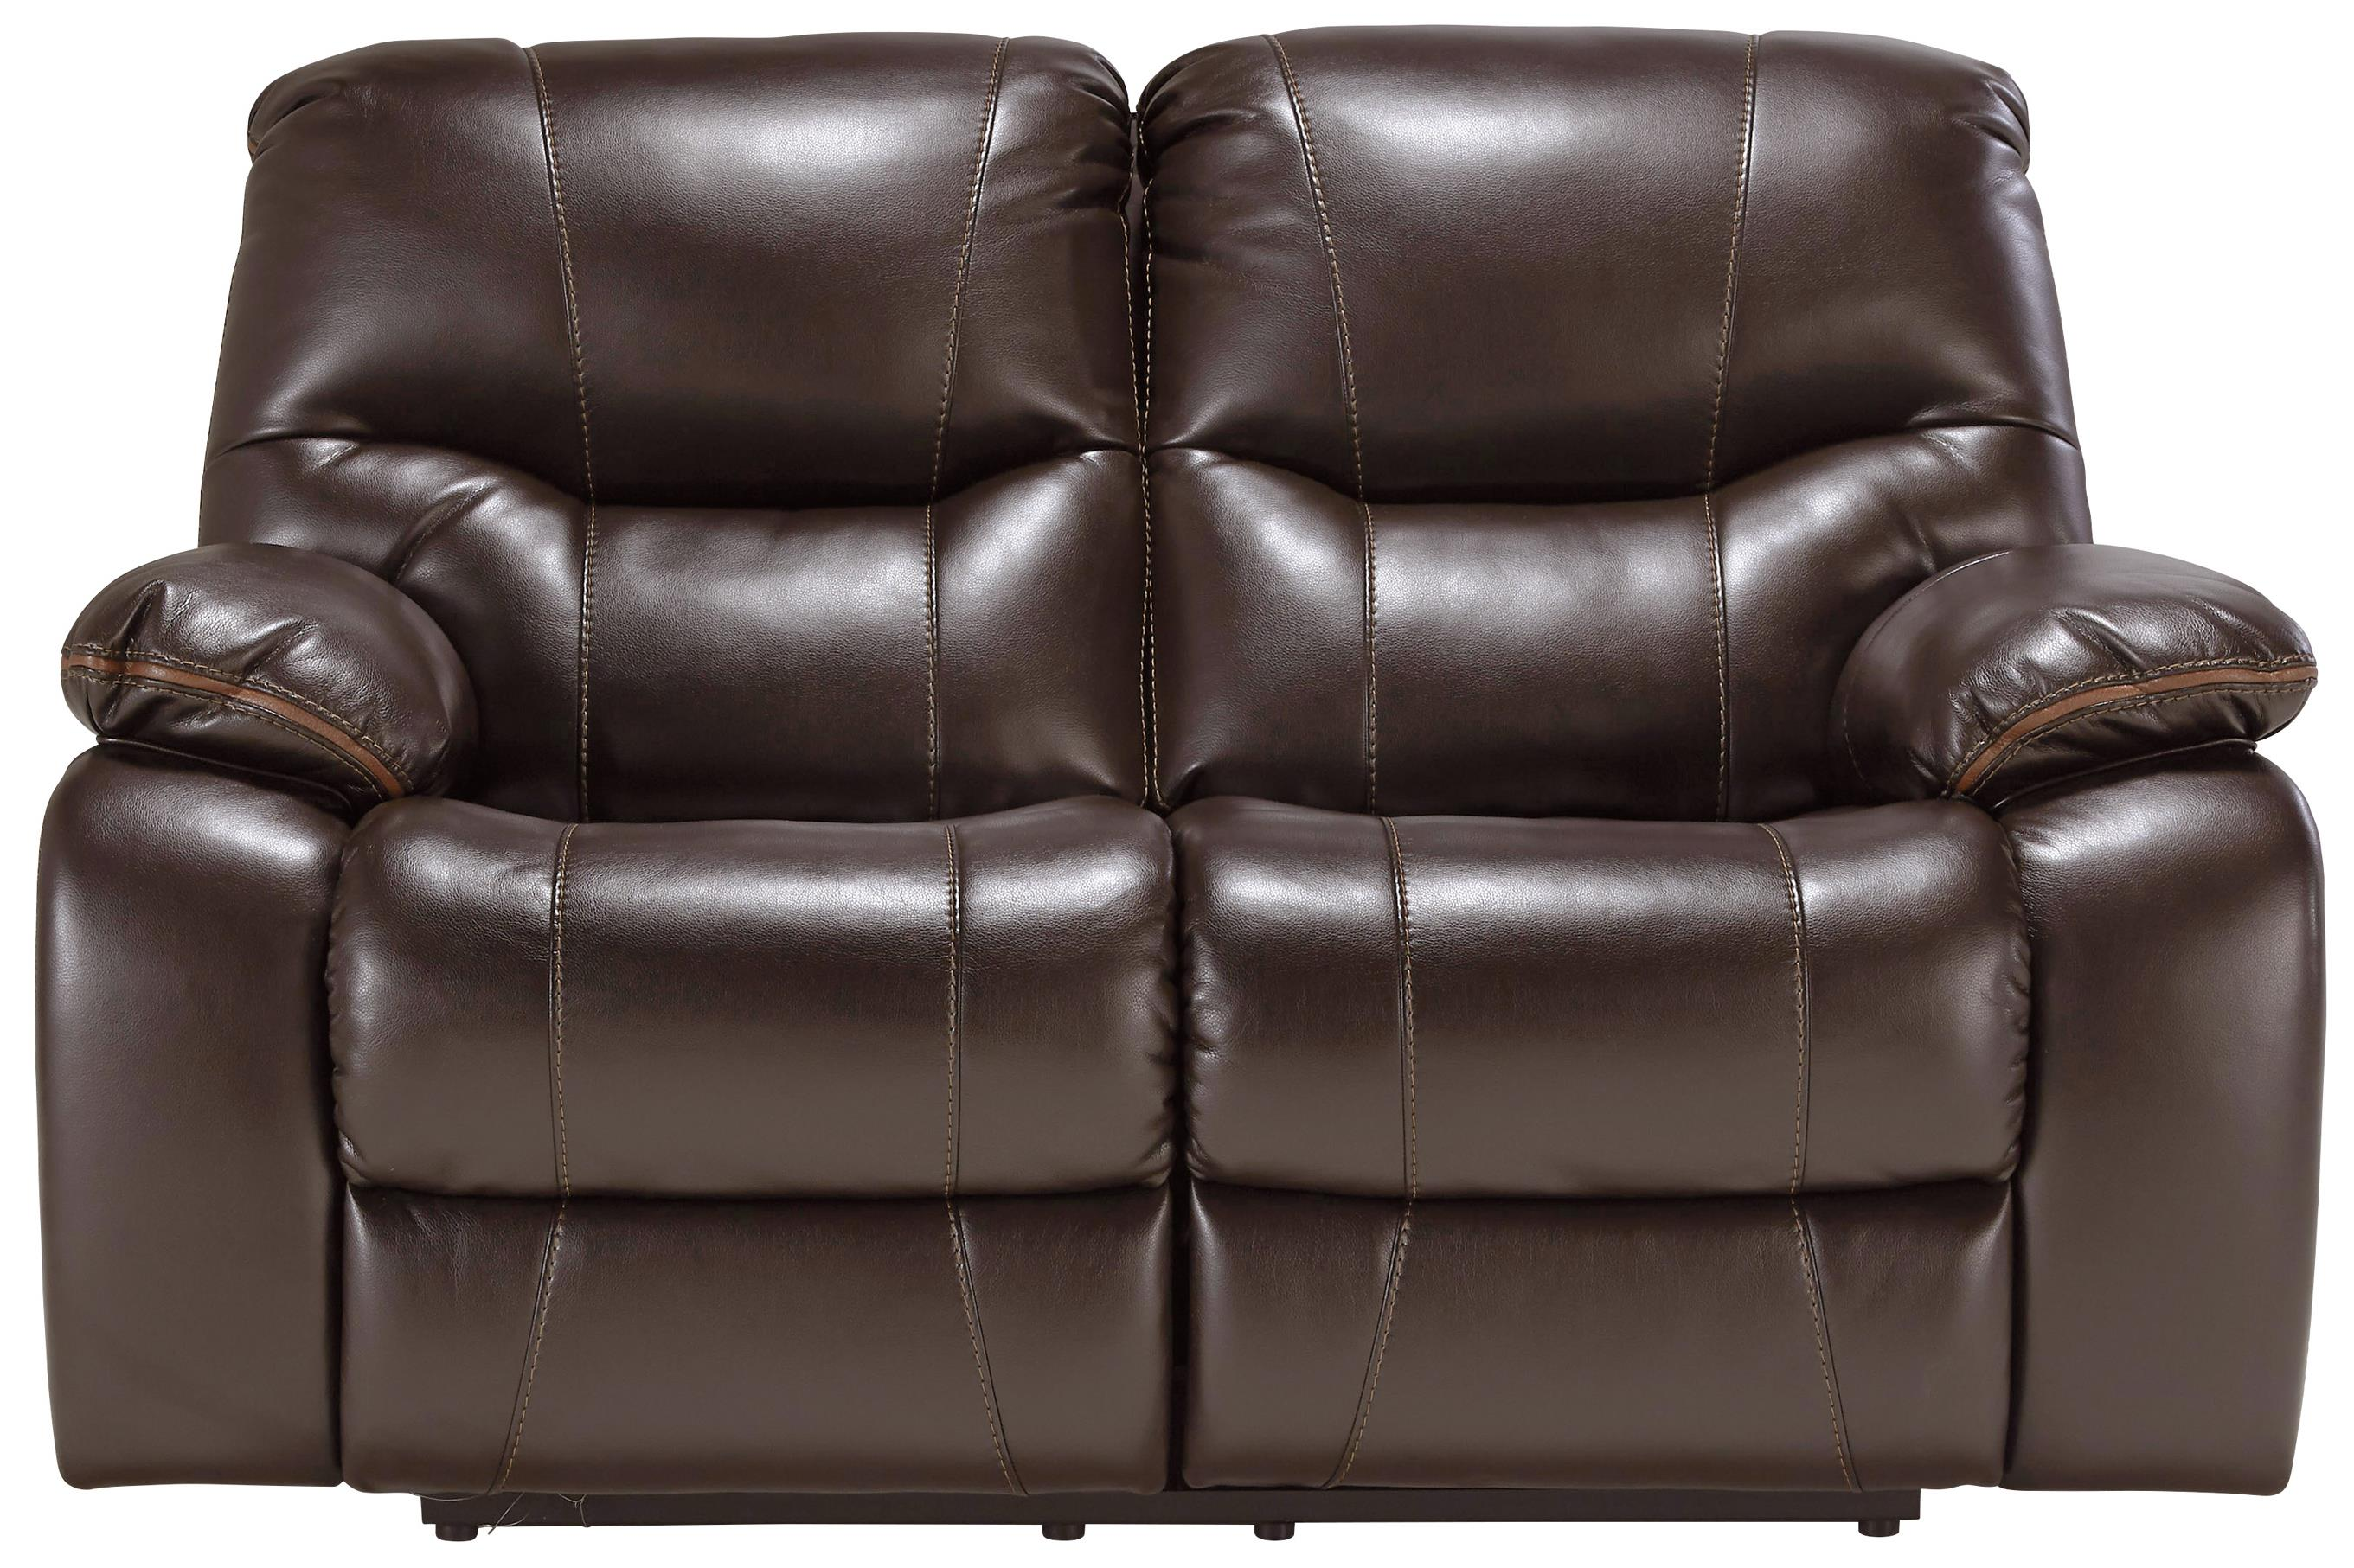 Signature Design by Ashley Pranas Reclining Power Loveseat - Item Number: 4790074